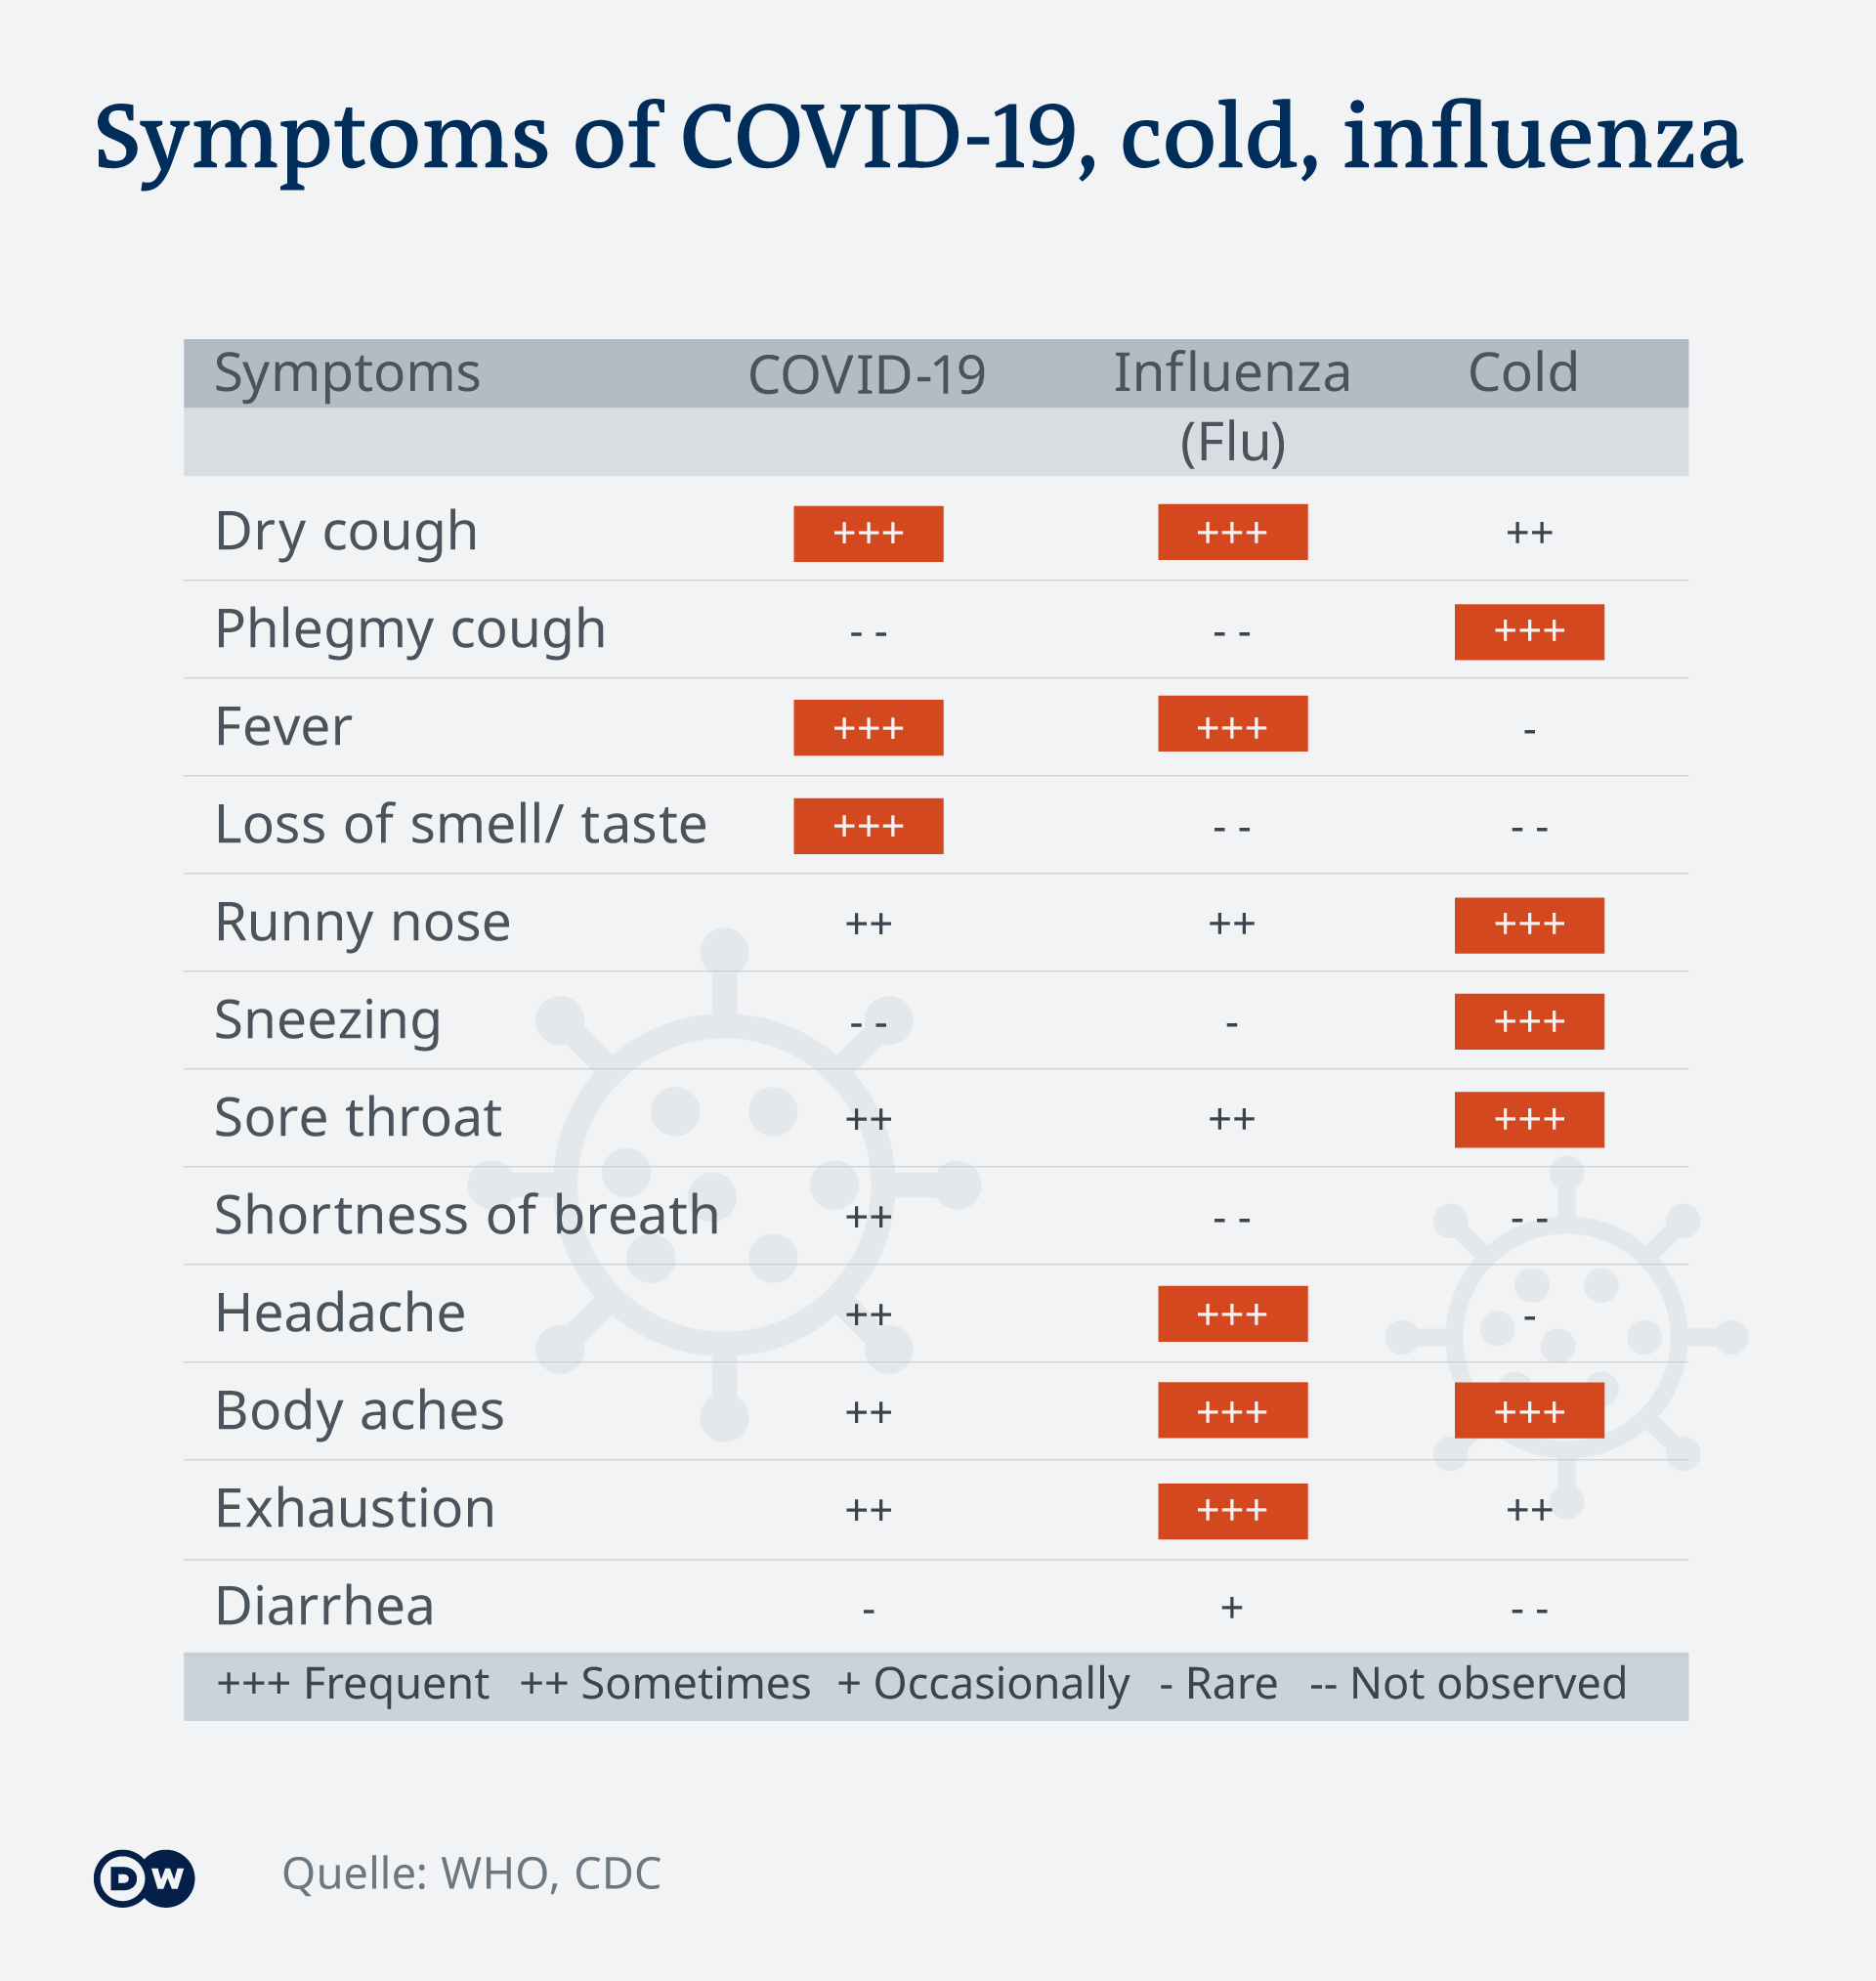 Covid 19 Cold Or Flu Symptoms Should I See A Doctor Science In Depth Reporting On Science And Technology Dw 14 10 2020